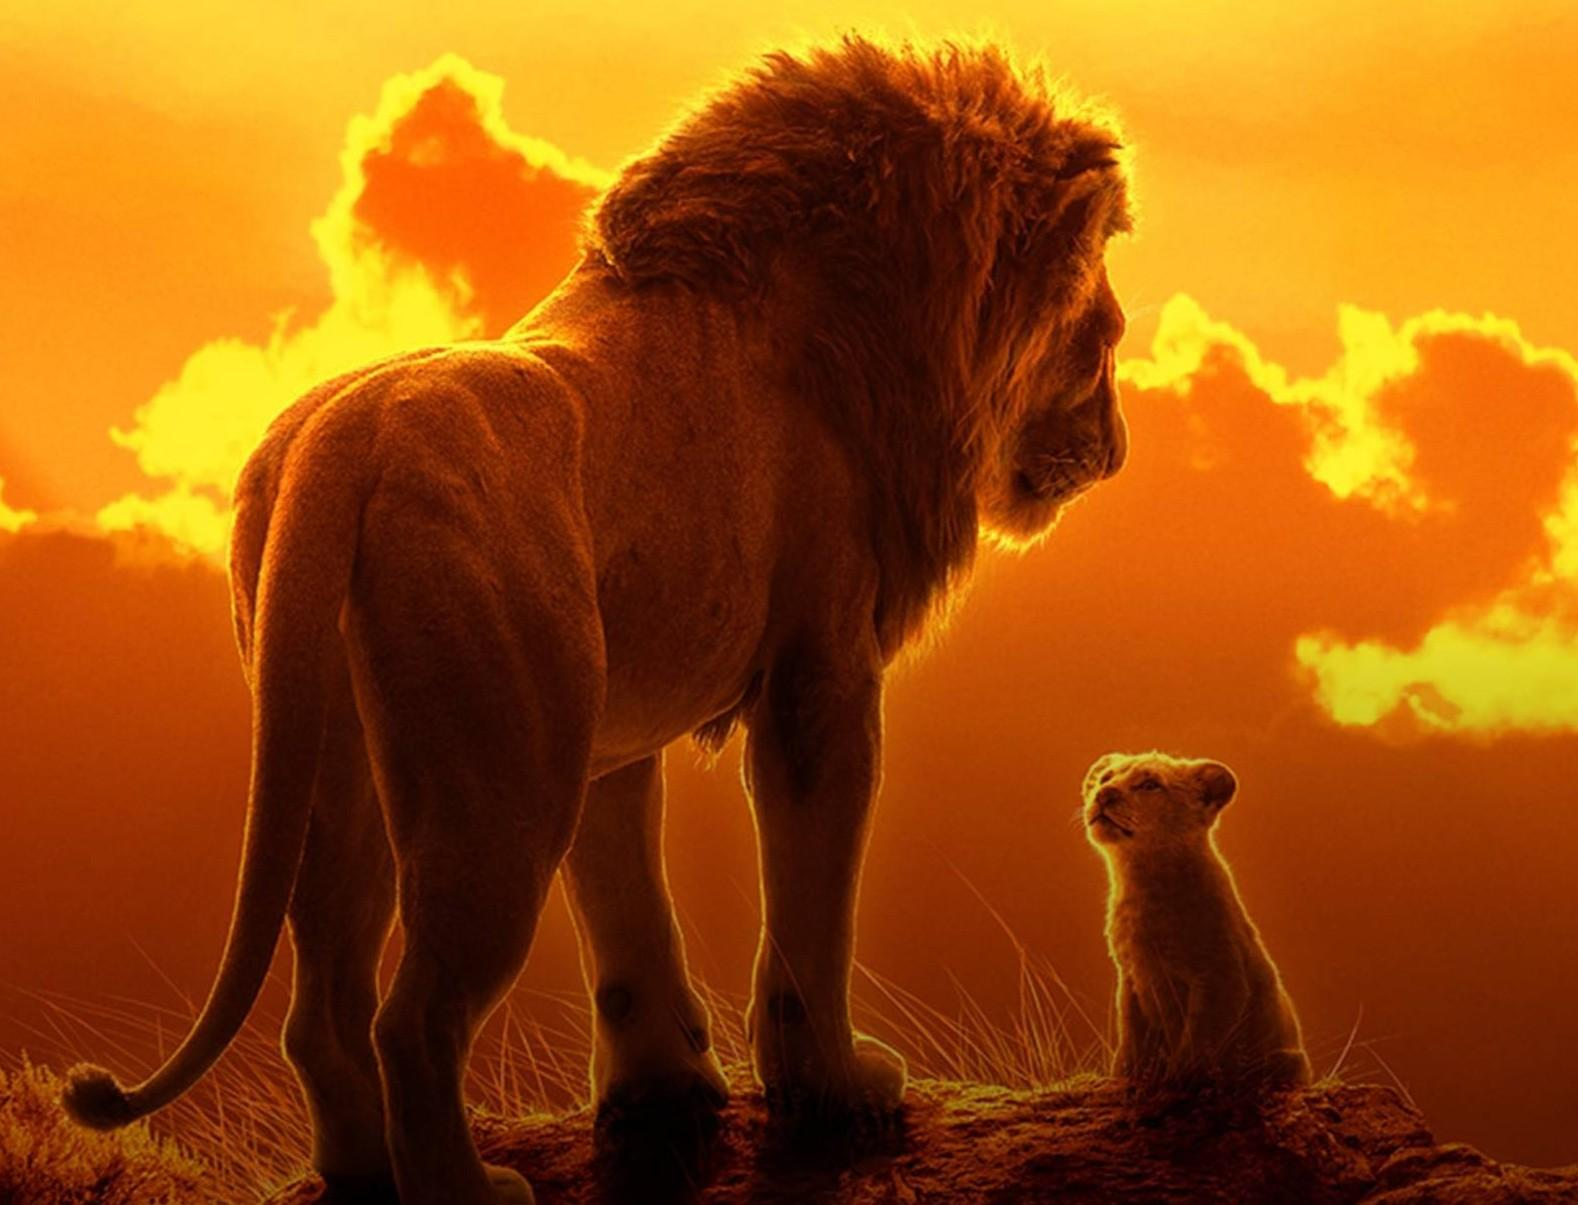 Disney bills elementary school $250 for showing Lion King without a permit